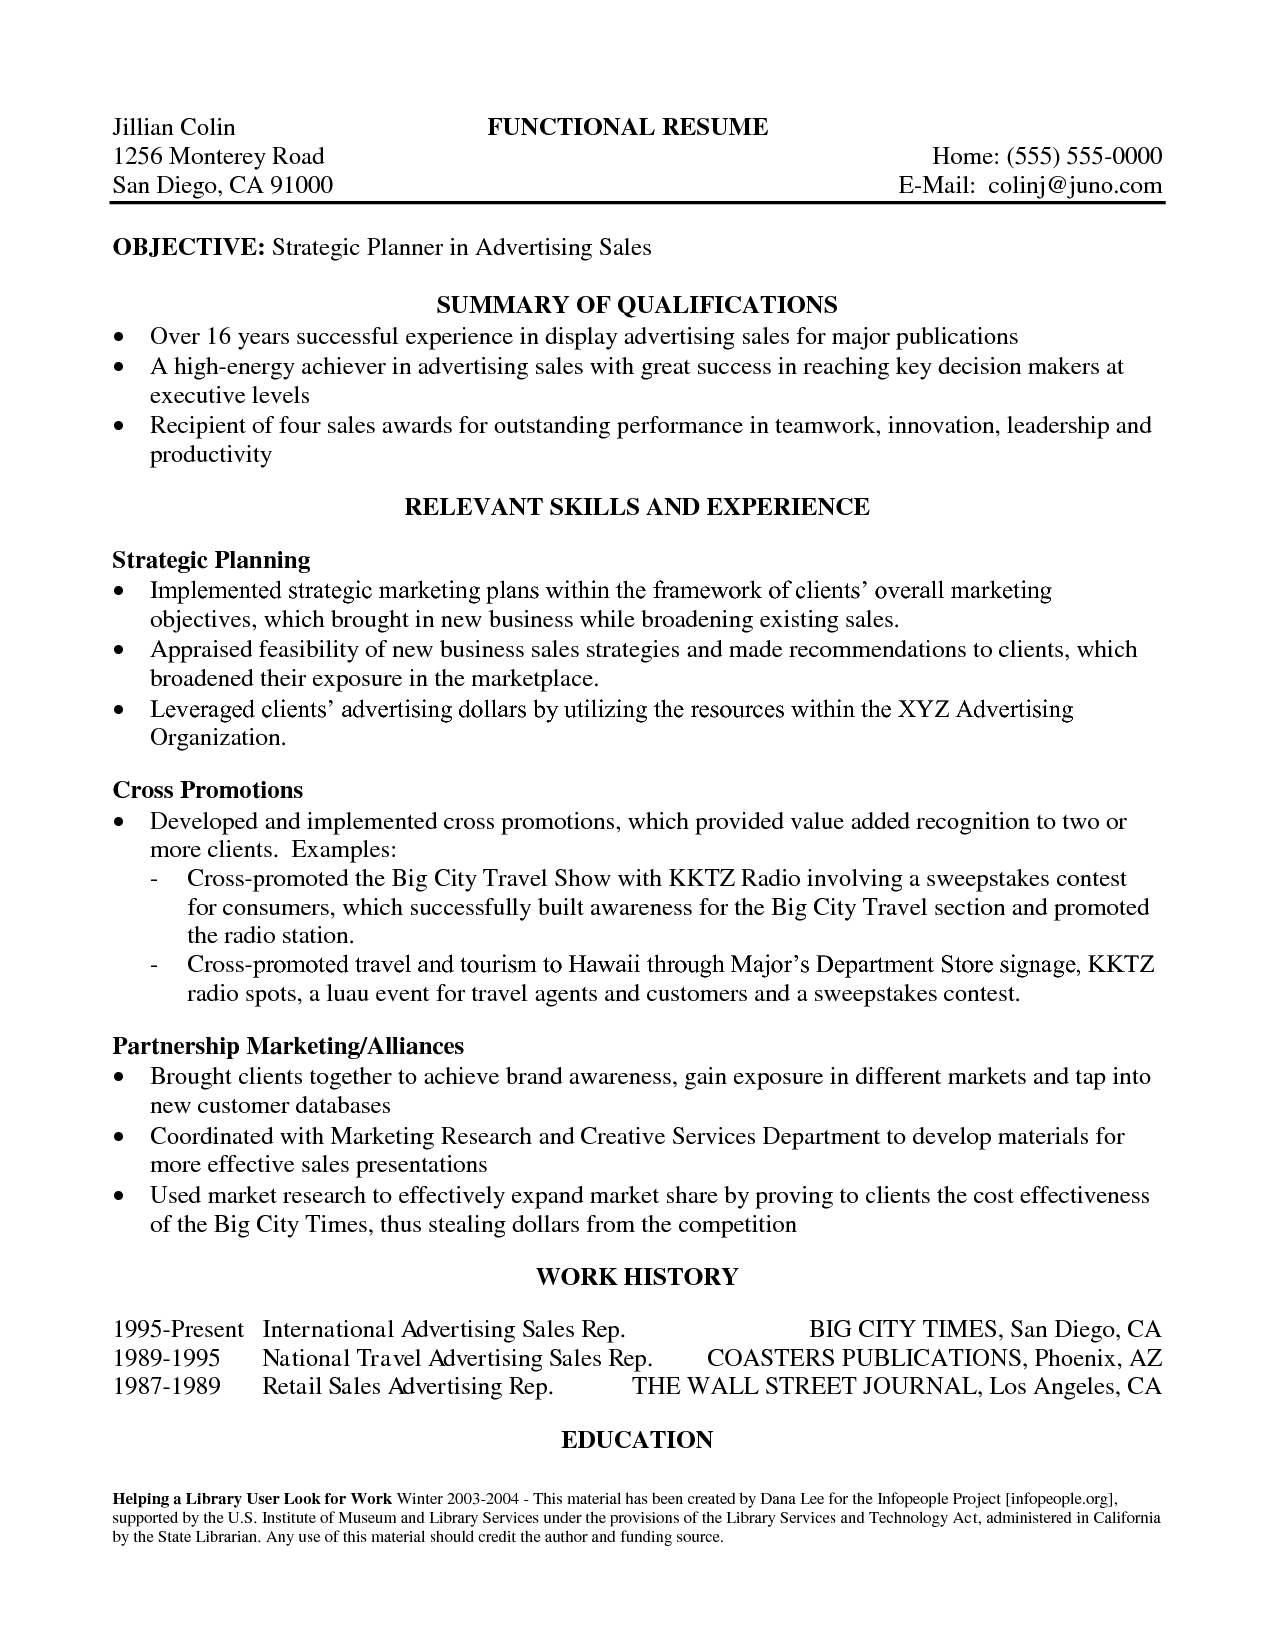 Examples Of A Summary For A Resume Unique Resume Examples Summary  Resume Examples  Pinterest  Resume Examples